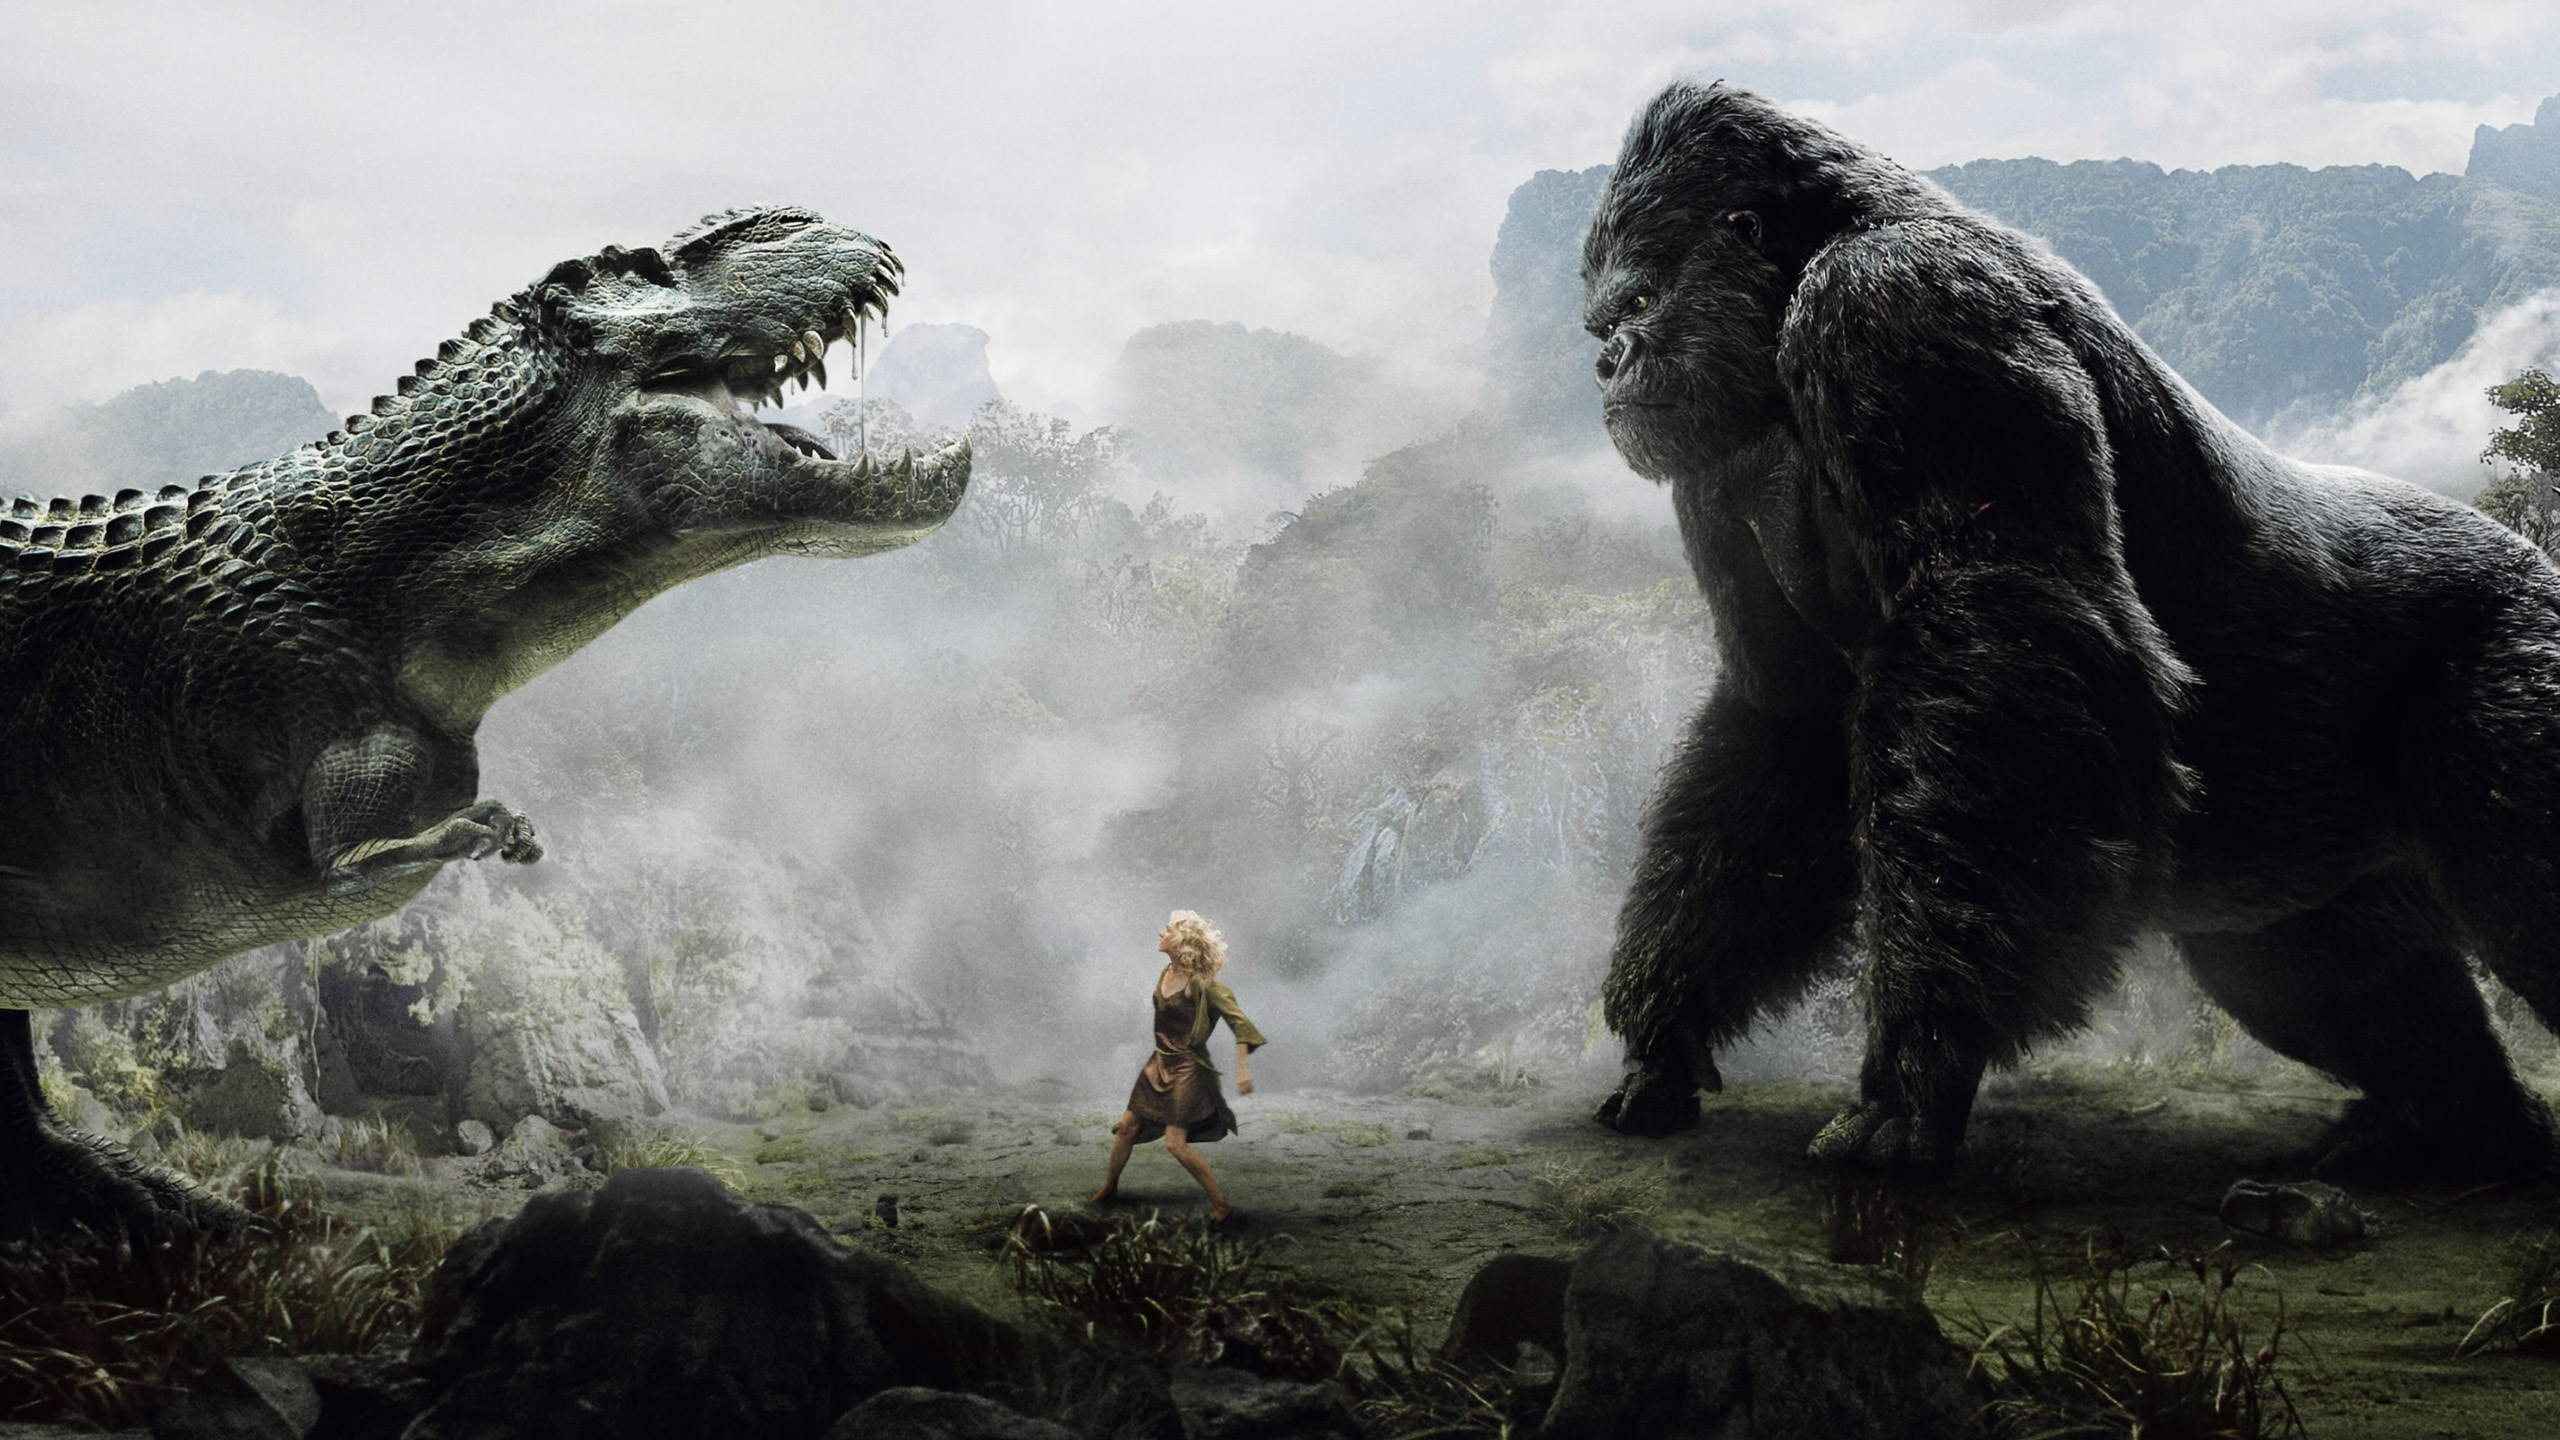 The Best 100 Hd And Qhd Wallpapers From 2015 Works For: Download Hintergrundbilder 2560x1440 QHD King Kong HD HD